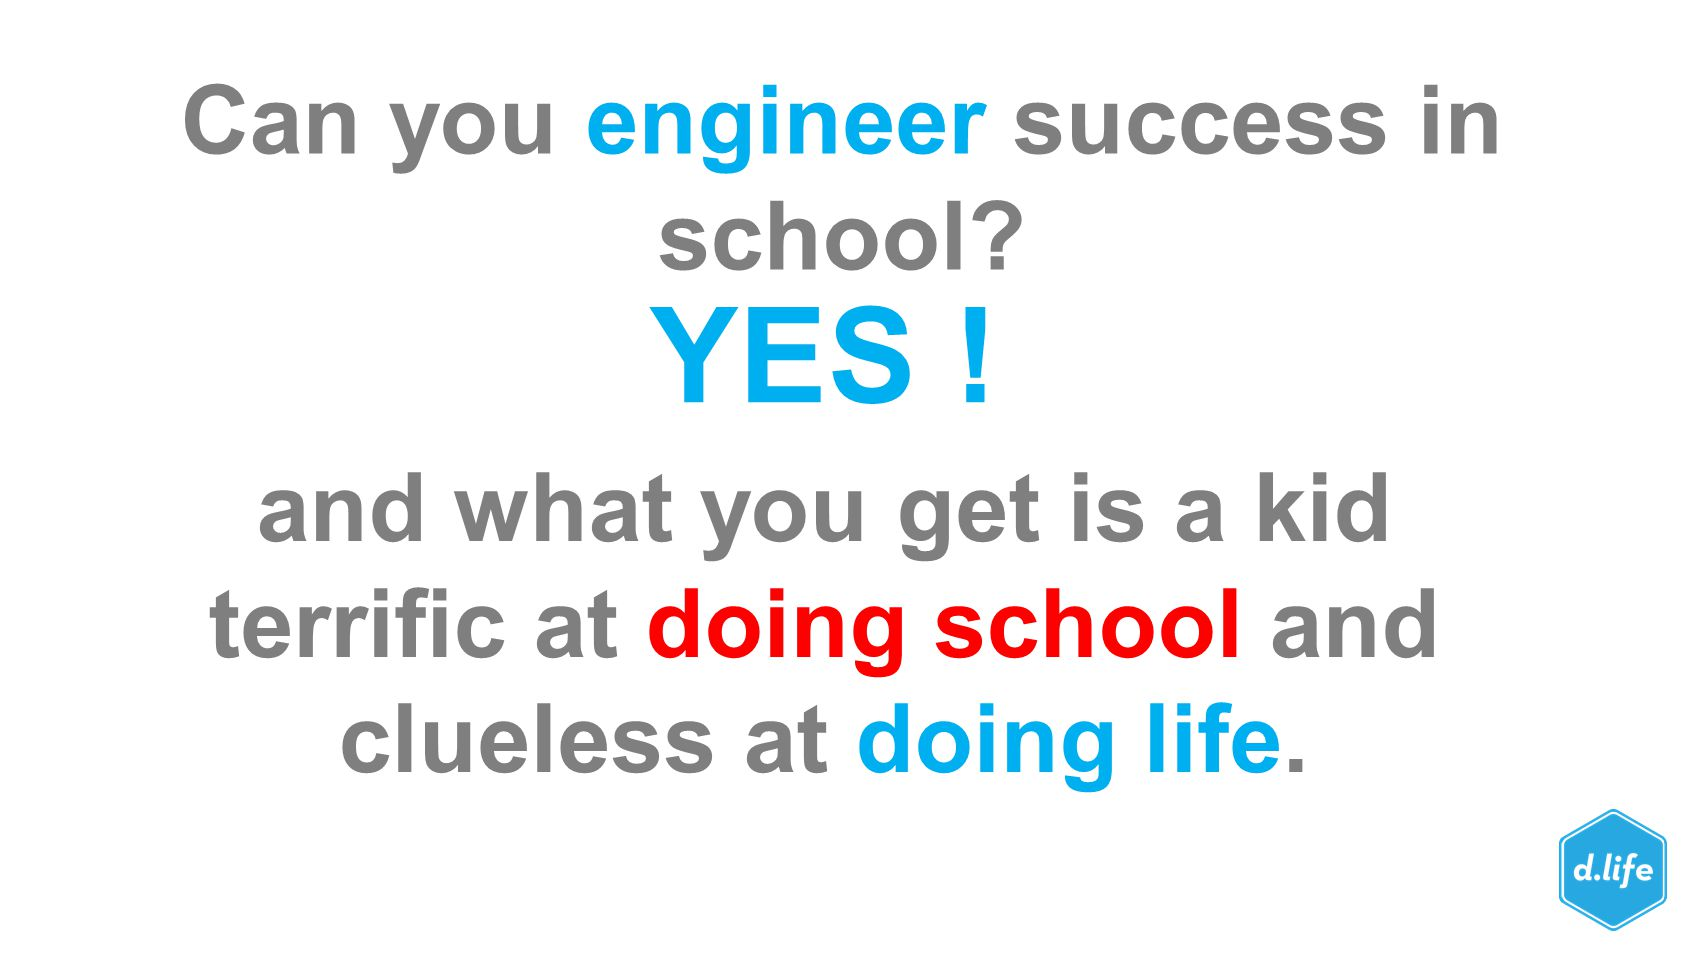 Can you engineer success in school? YES ! and what you get is a kid terrific at doing school and clueless at doing life.